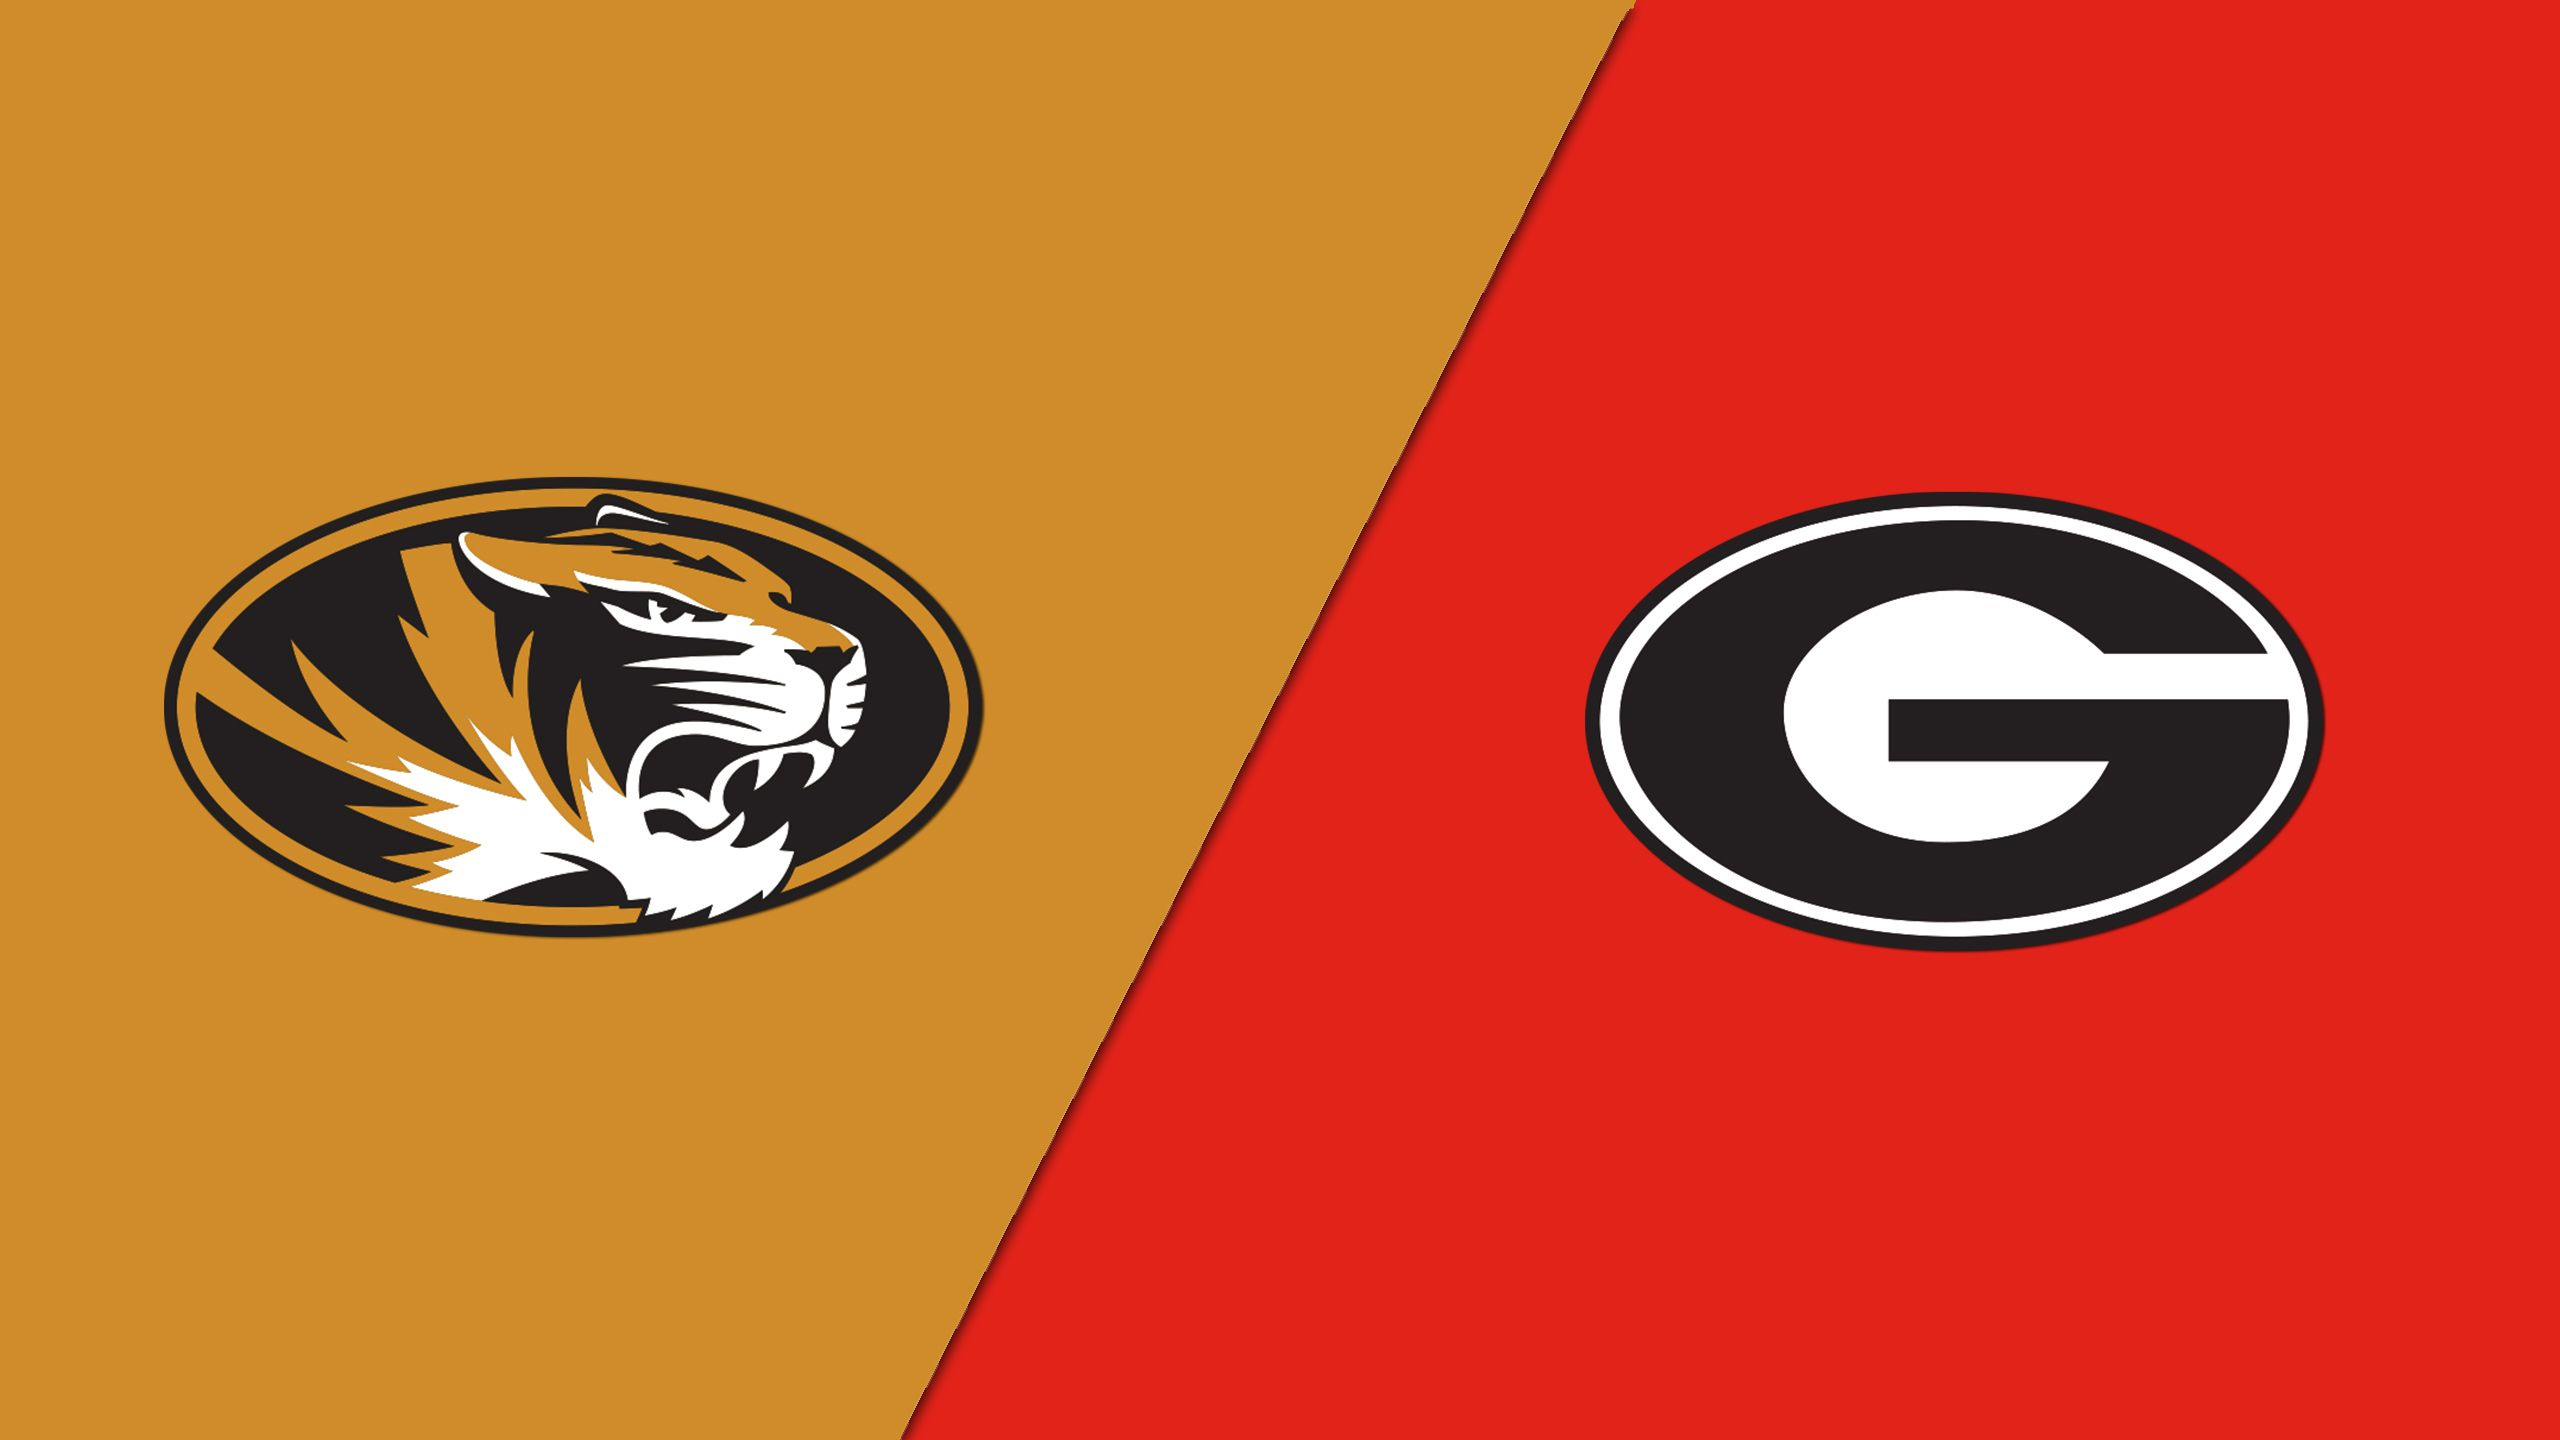 #16 Missouri vs. #18 Georgia (Quarterfinal #4) (re-air)